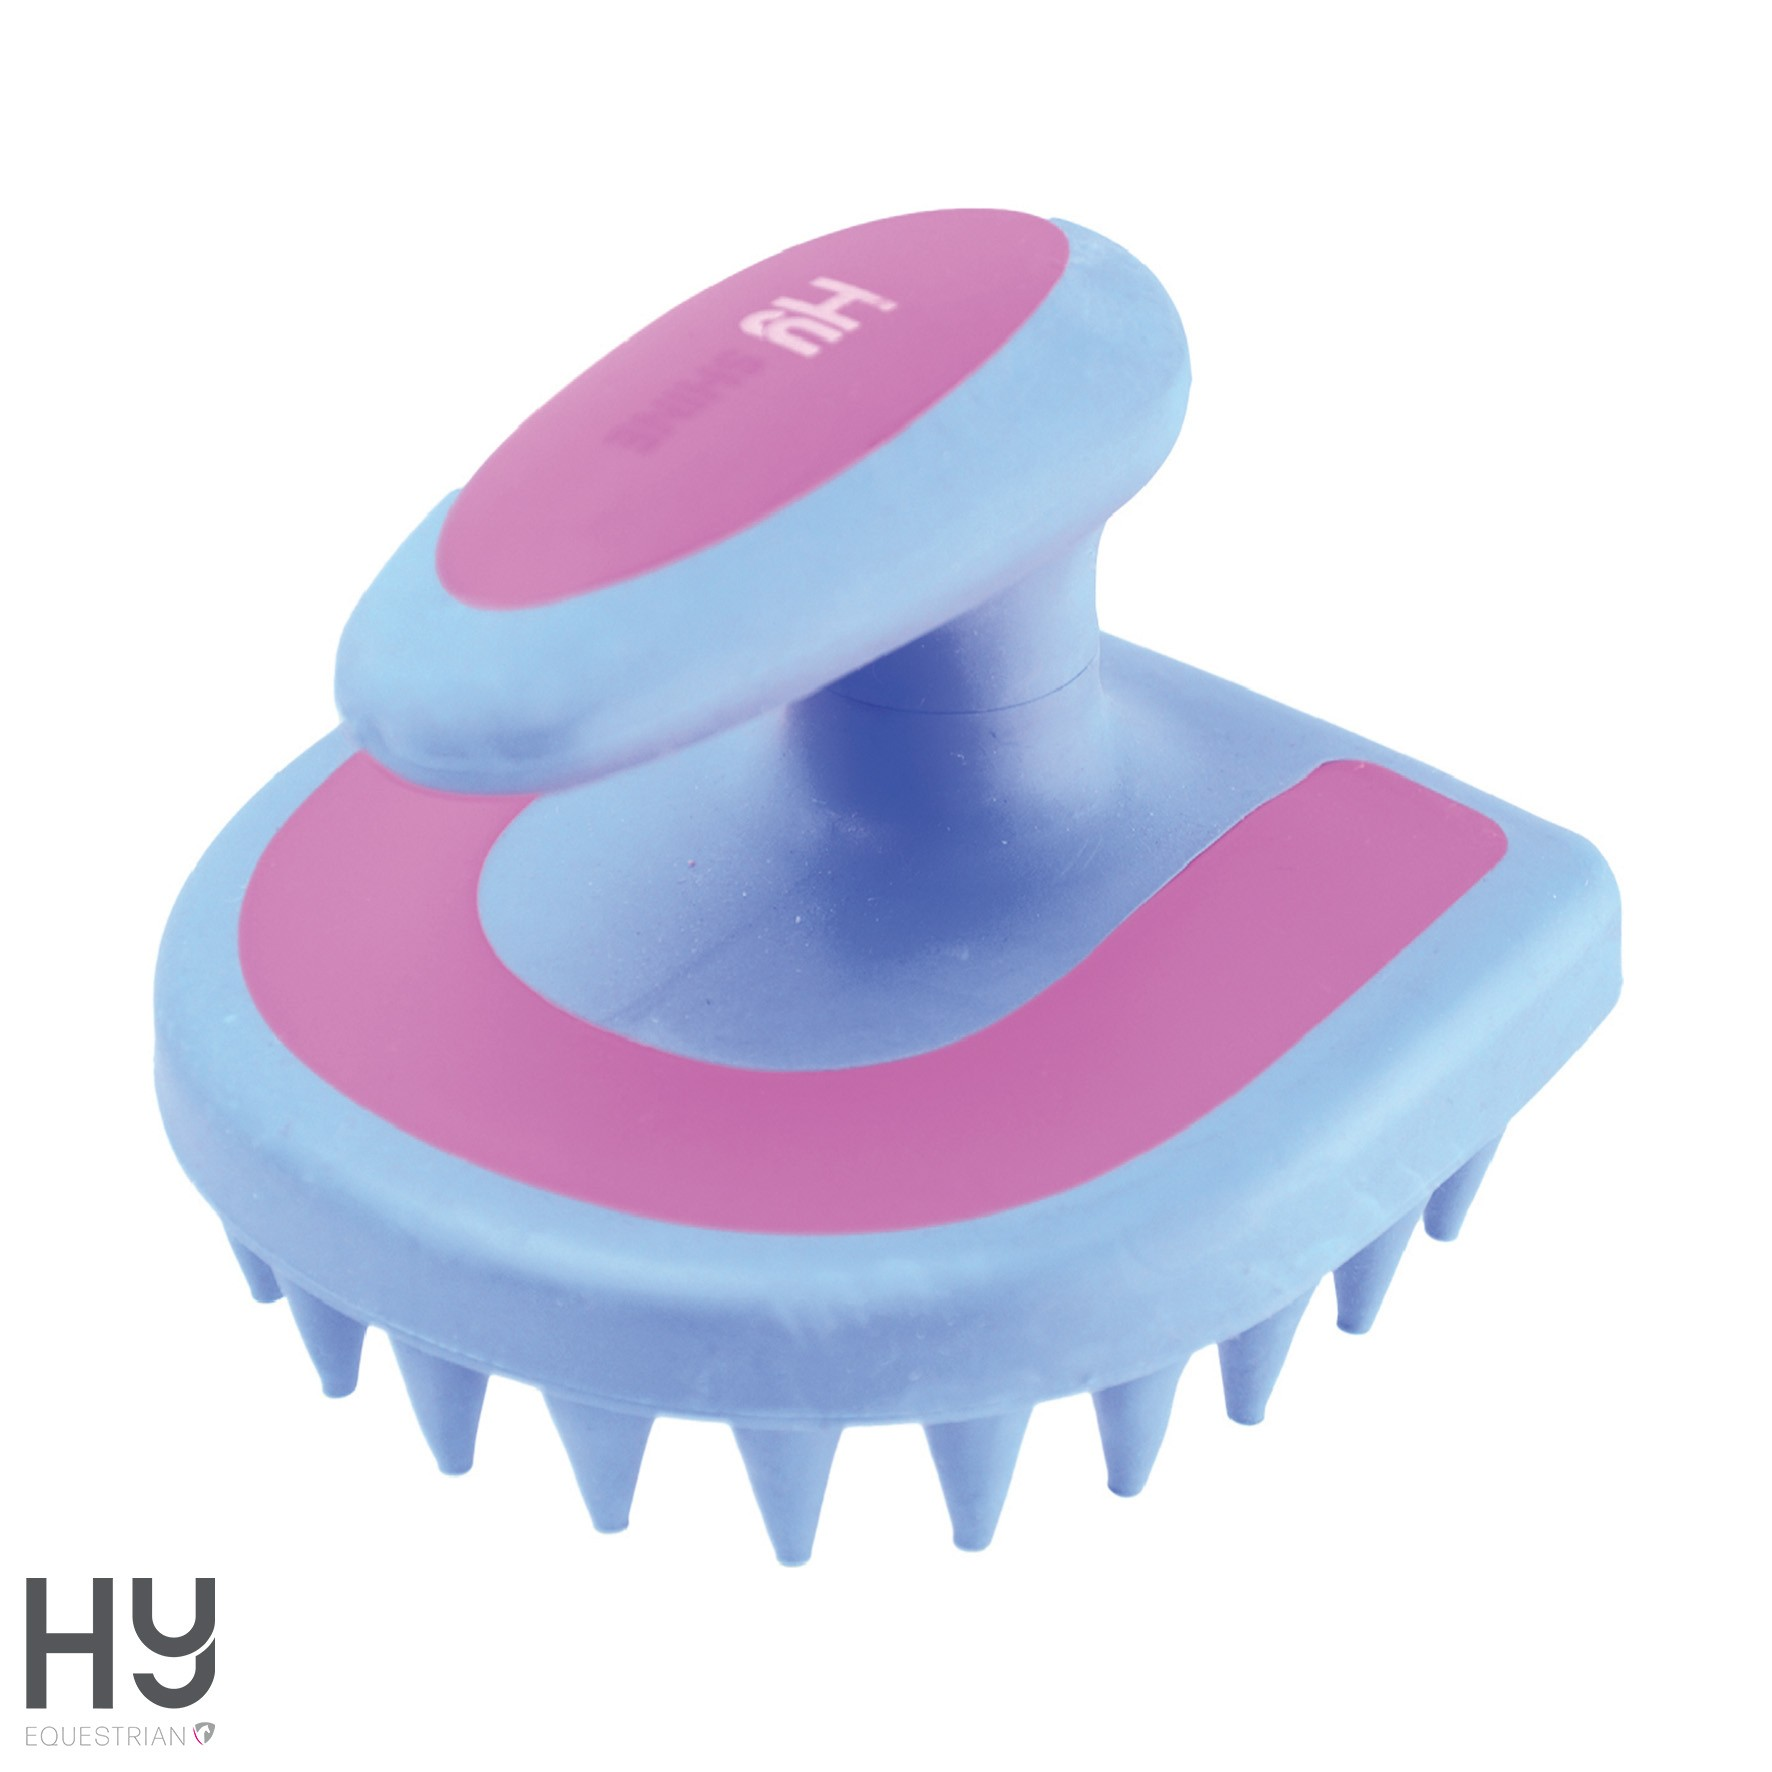 HySHINE Horseshoe Massage Brush